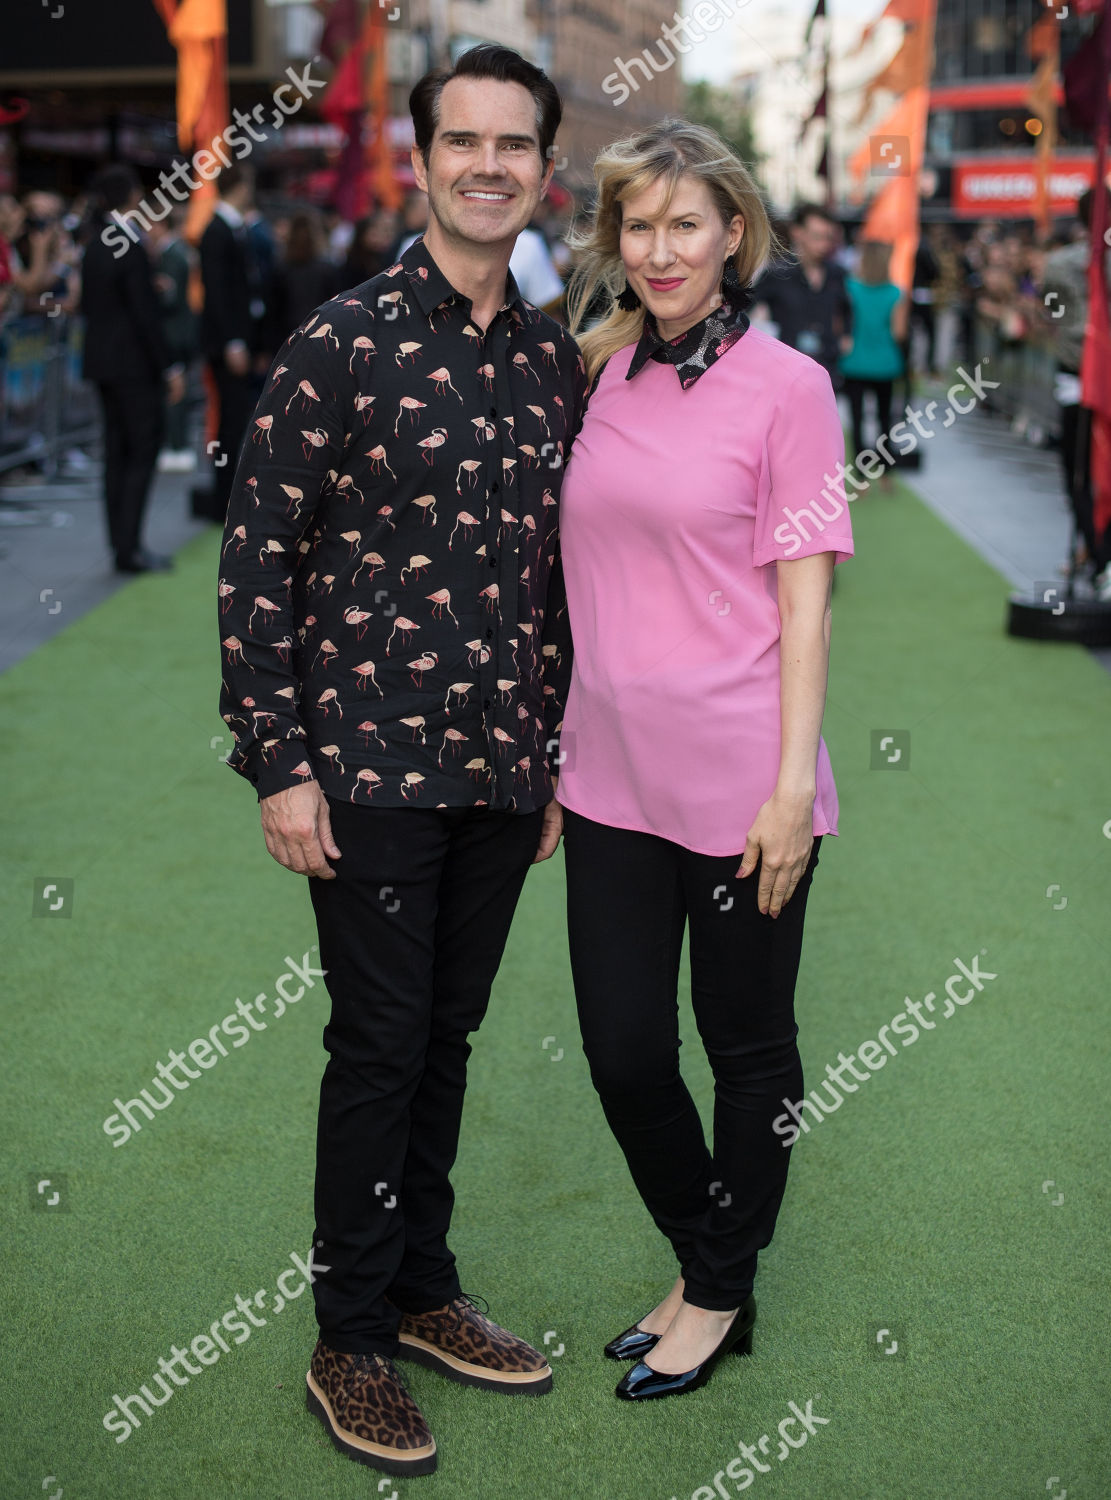 Jimmy Carr Karoline Copping Editorial Stock Photo Stock Image Shutterstock Why people had a crush on her? https www shutterstock com editorial image editorial the festival film premiere london uk 13 aug 2018 9788849bz